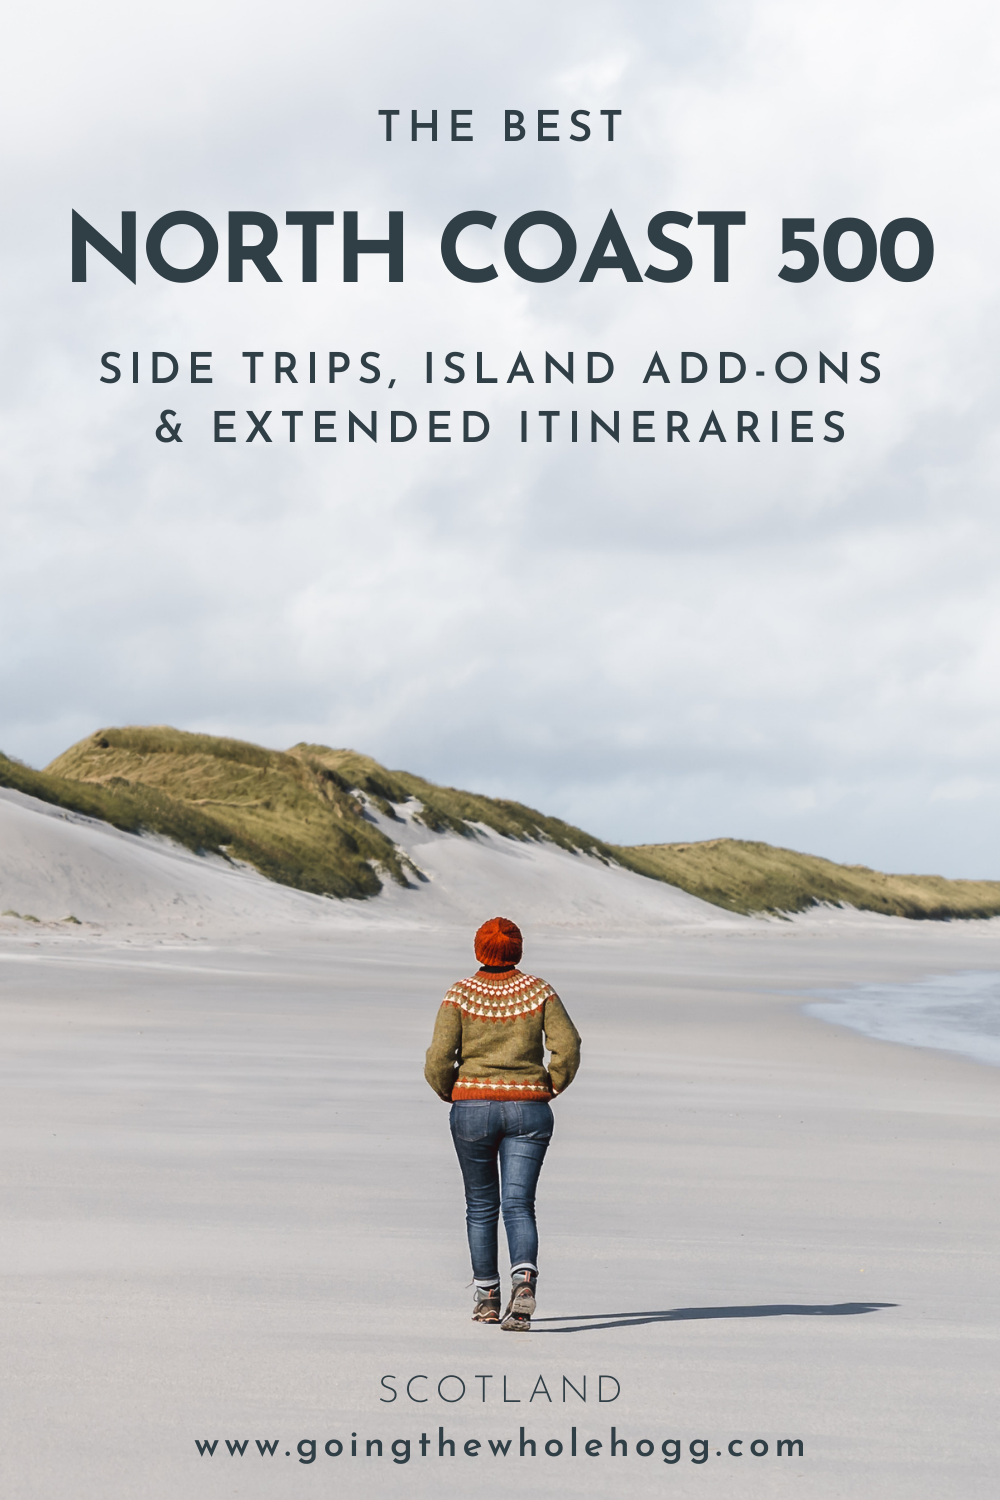 The Best North Coast 500 Side Trips, Island Add-ons & Extended Itineraries